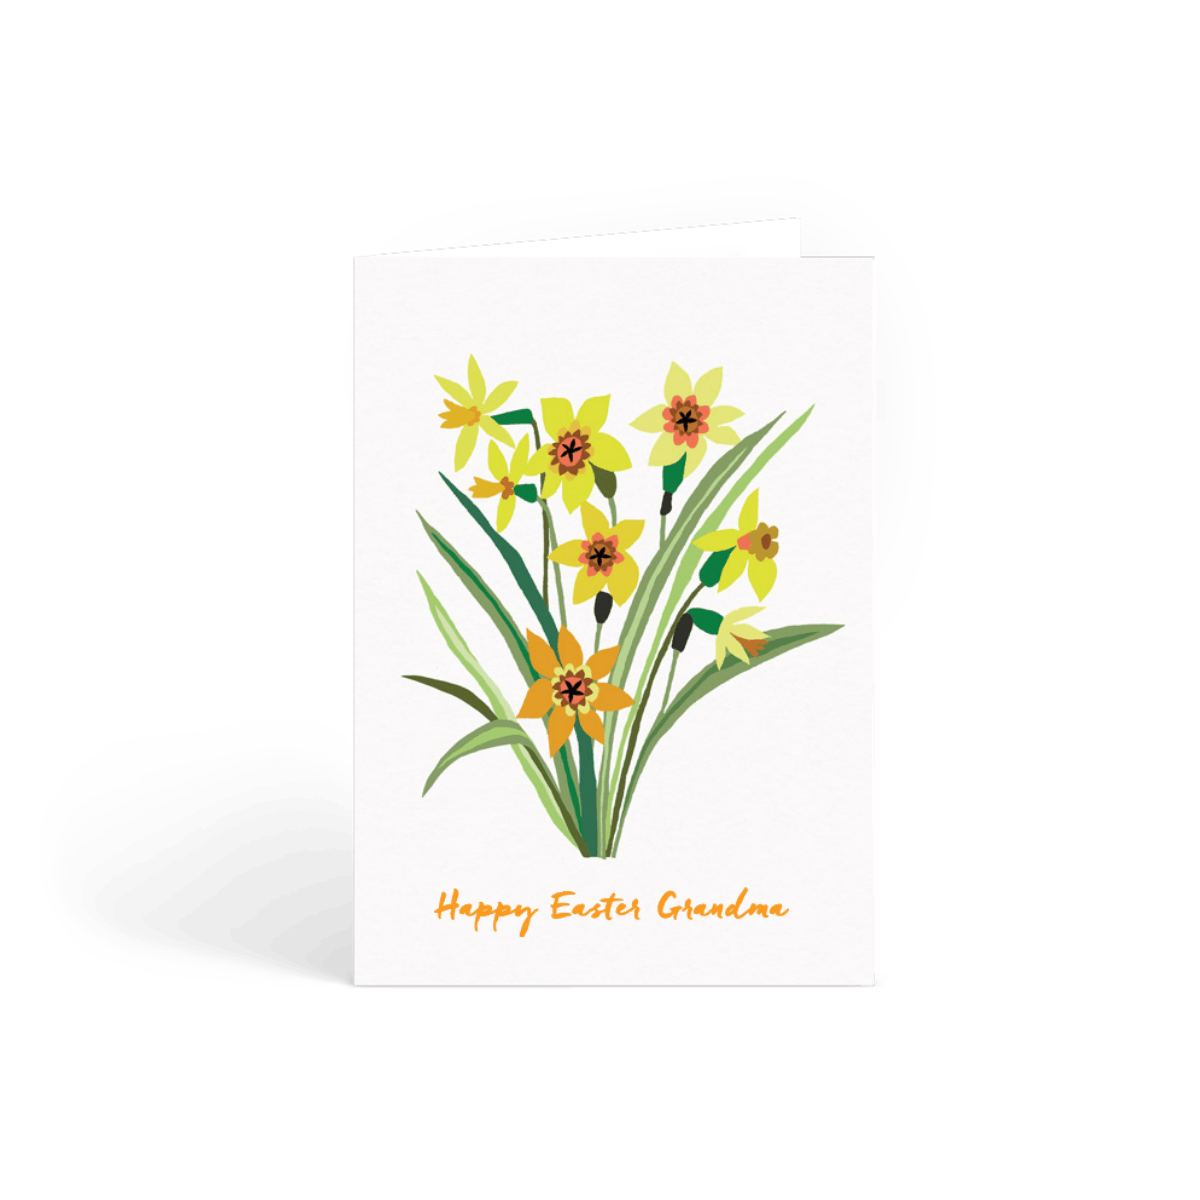 Https%3a%2f%2fwww.papier.com%2fproduct image%2f20886%2f2%2feaster daffodils 5335 front 1542736691.png?ixlib=rb 1.1